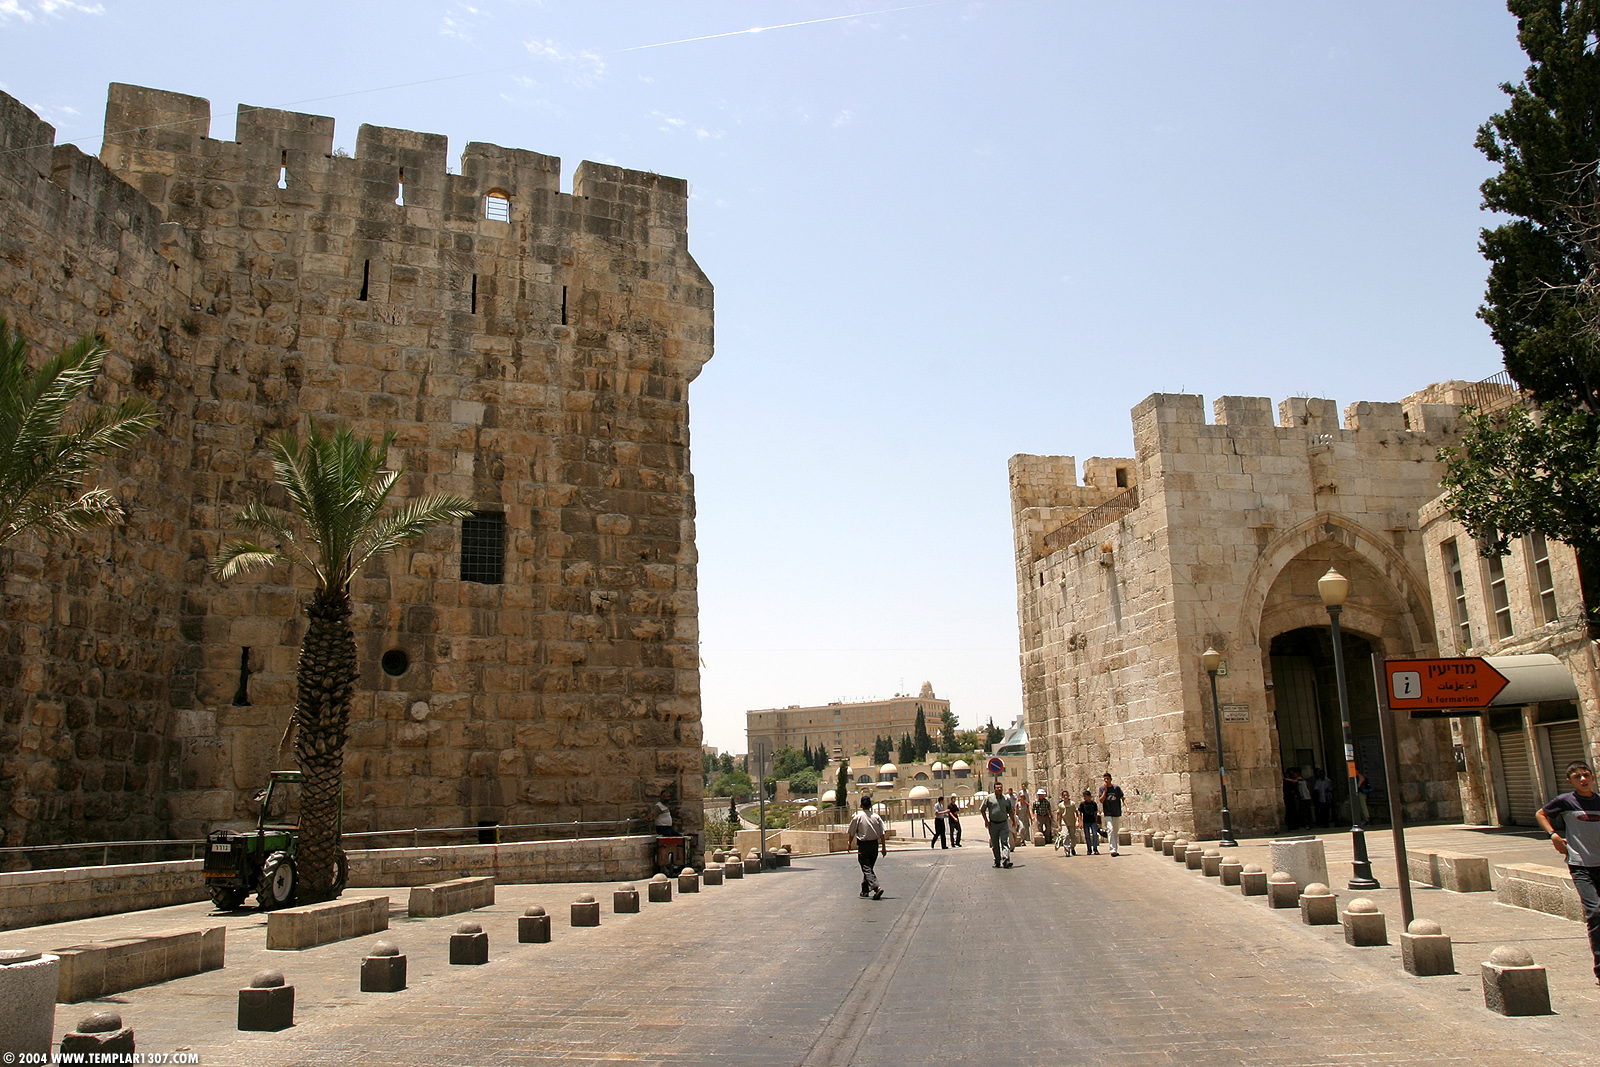 Jaffa Gate - باب الخليل : From inside the gate looking west, King David can be clearly seen in the middle of the picture